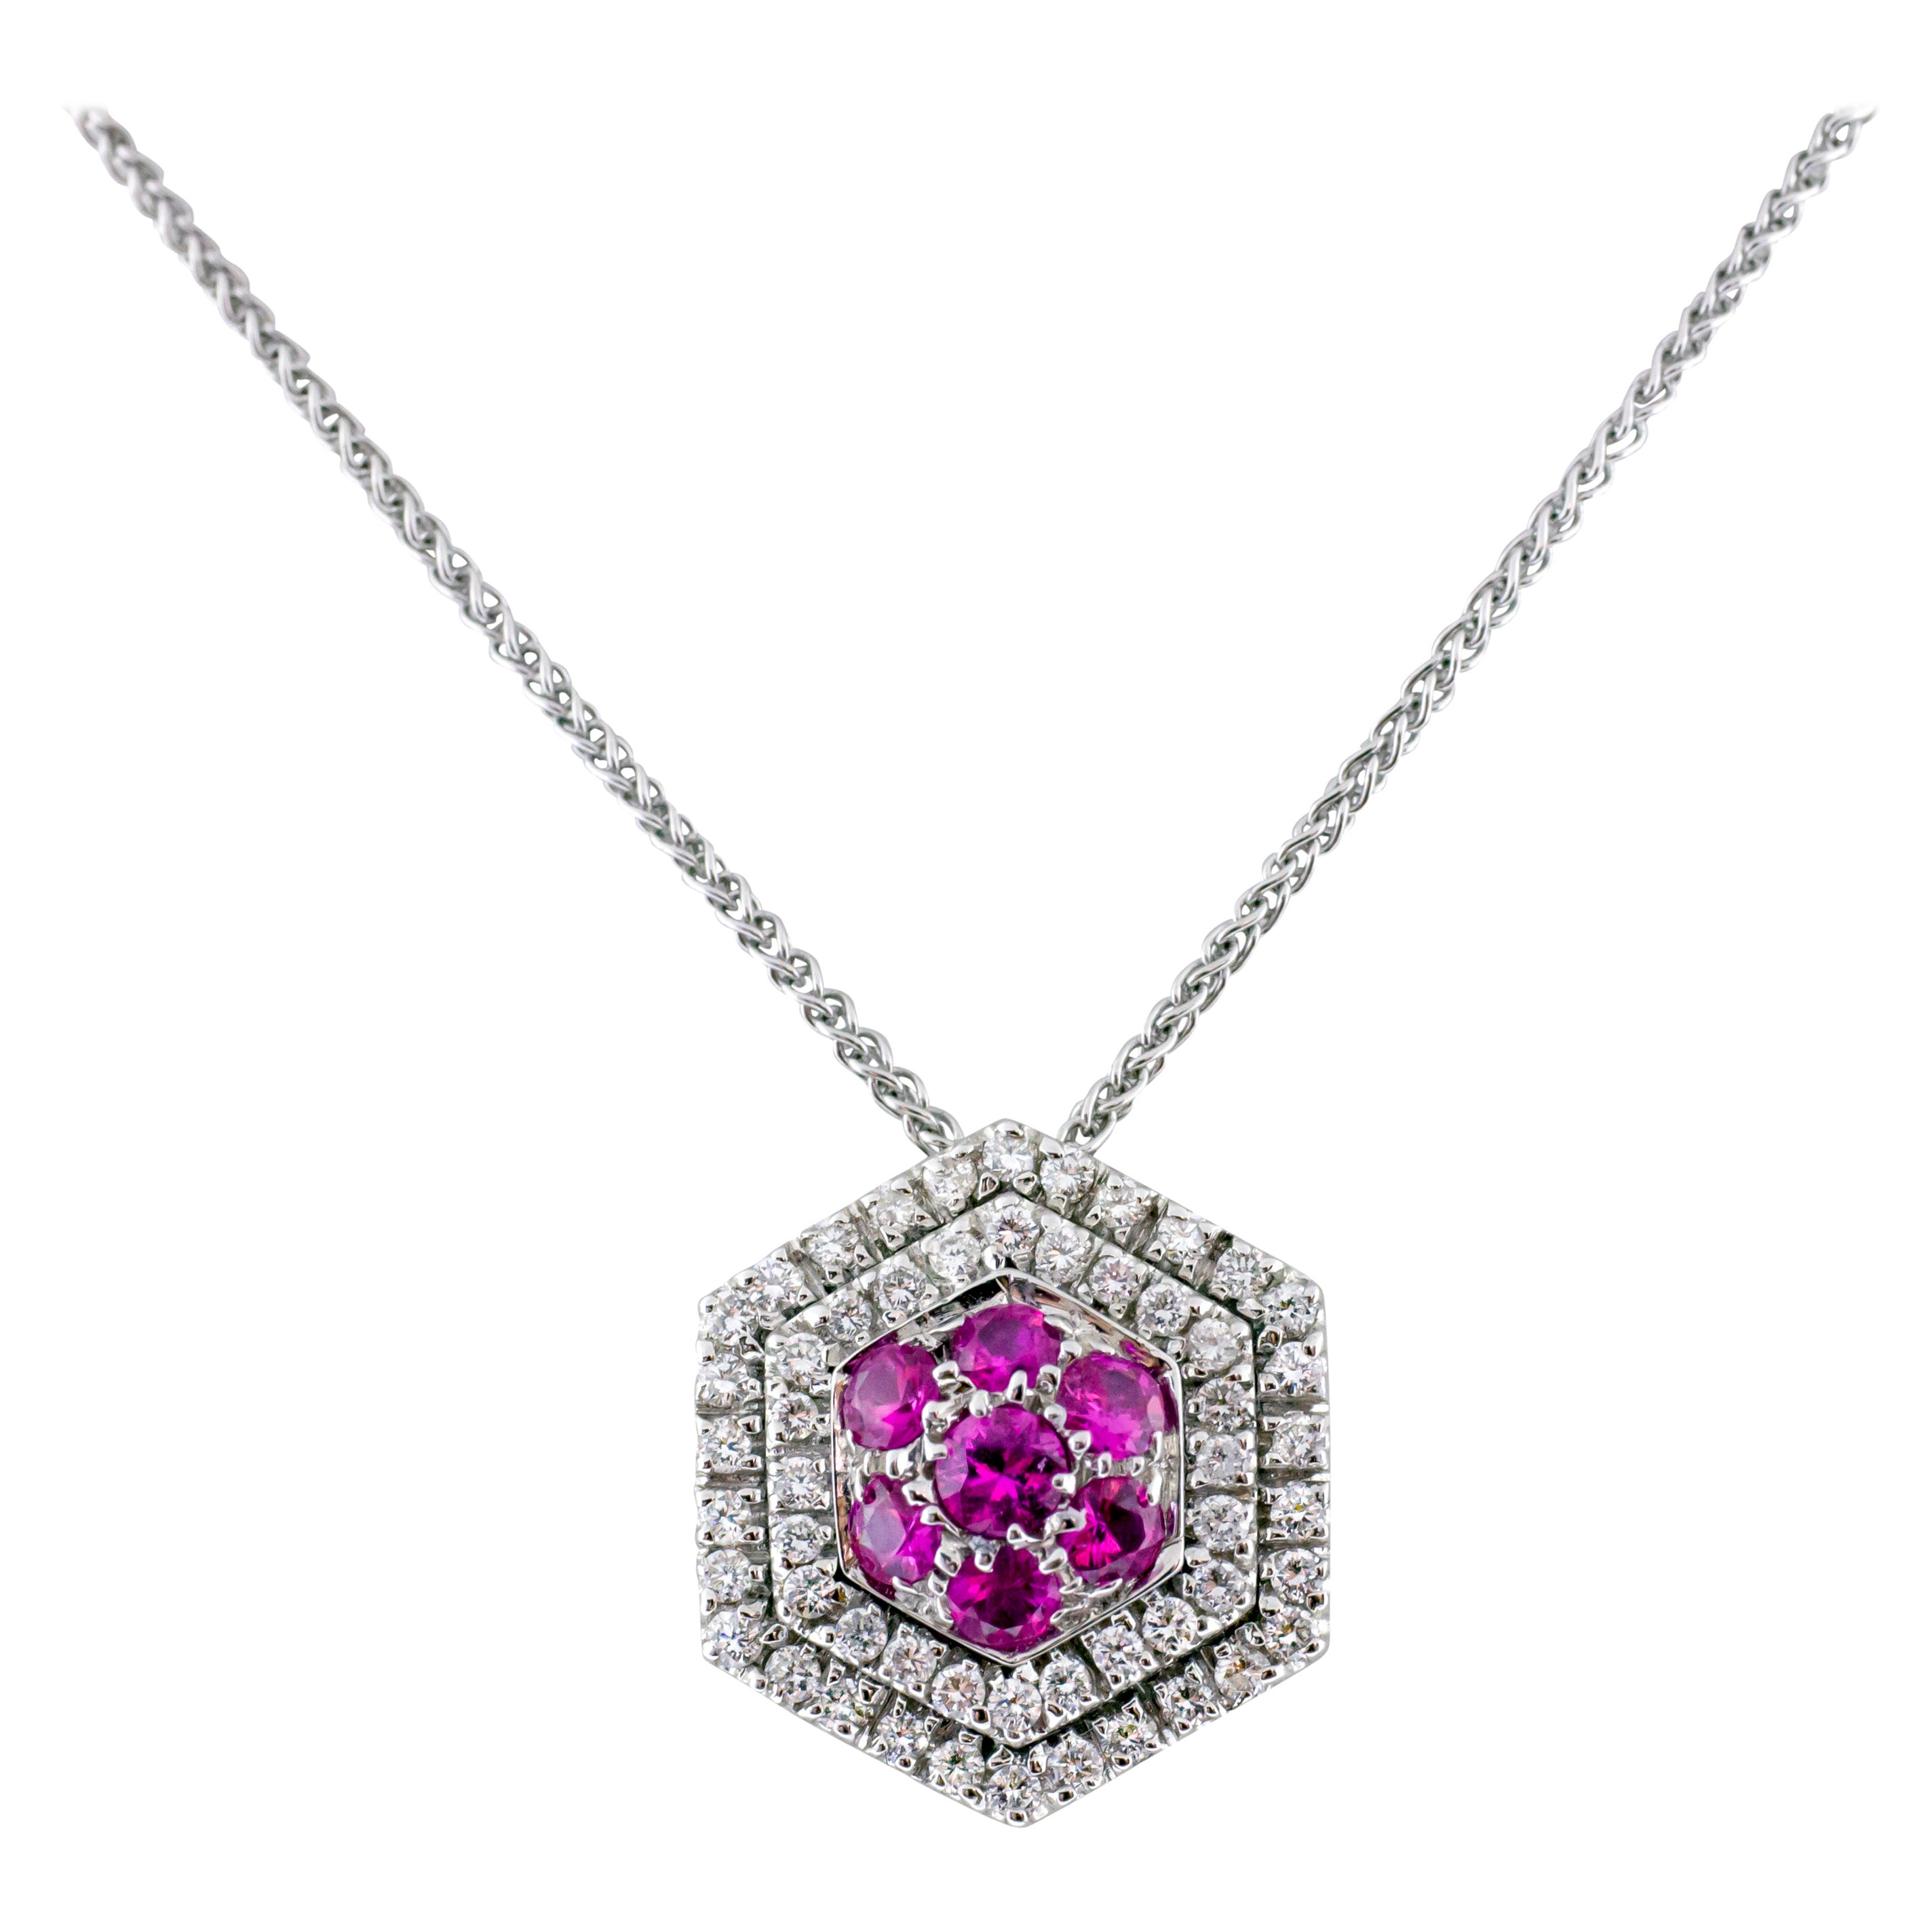 18 Karat White Gold Diamond and Pink Sapphire Pendant Necklace